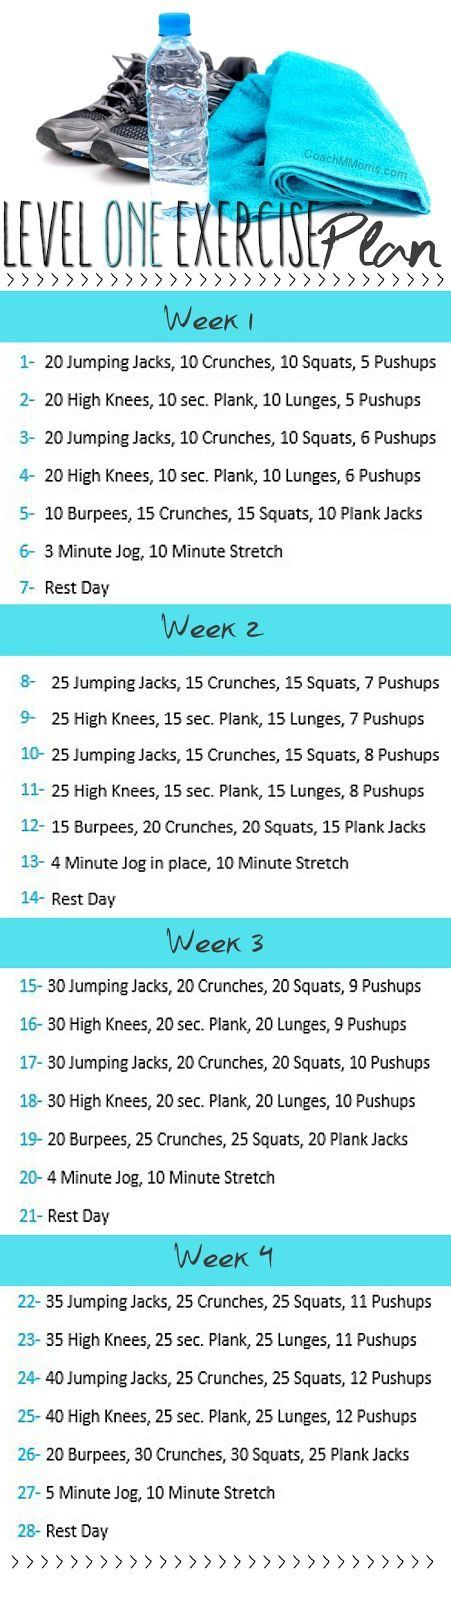 Workout plan for 60days.